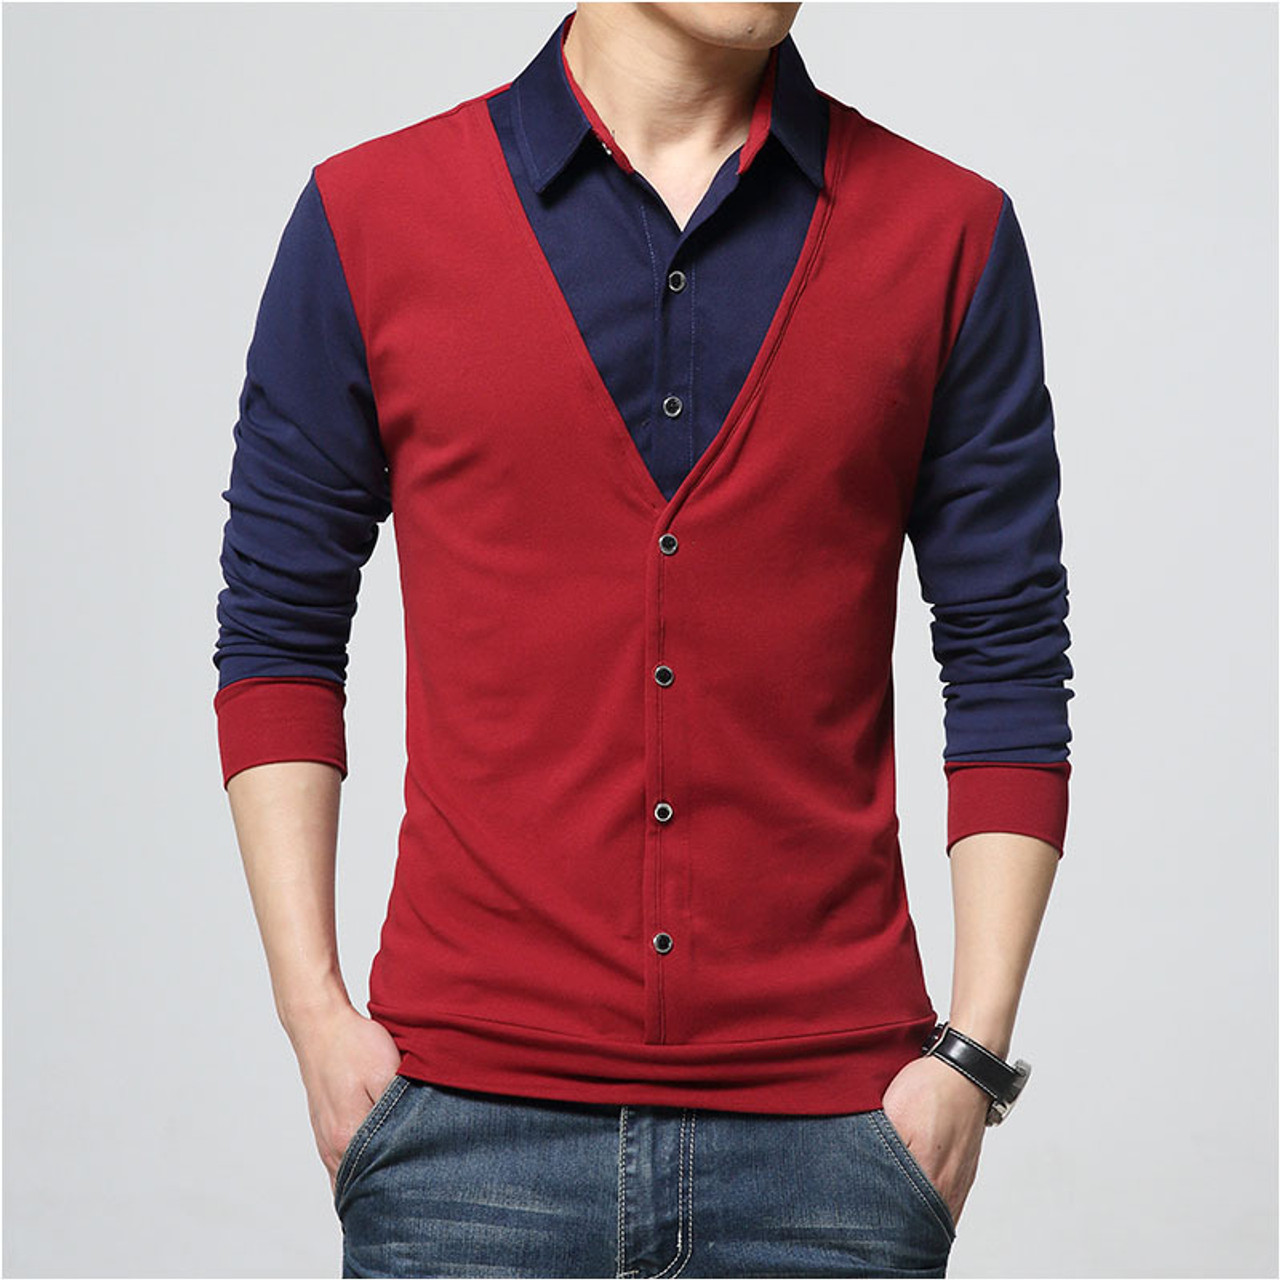 Fashion Designer Clothes For Men   Mens T Shirts Fake Two Stitching Buttons Decoration 2018 Fashion